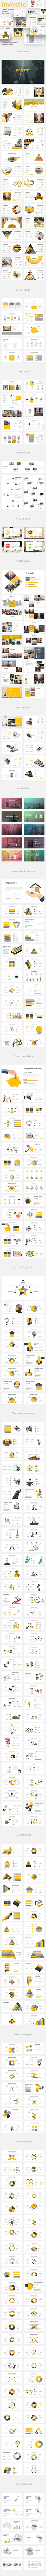 Creative Powerpoint Templates, Powerpoint Presentation Templates, Keynote Template, Ad Design, Layout Design, Graphic Design, Presentation Slides, Presentation Design, Pitch Deck